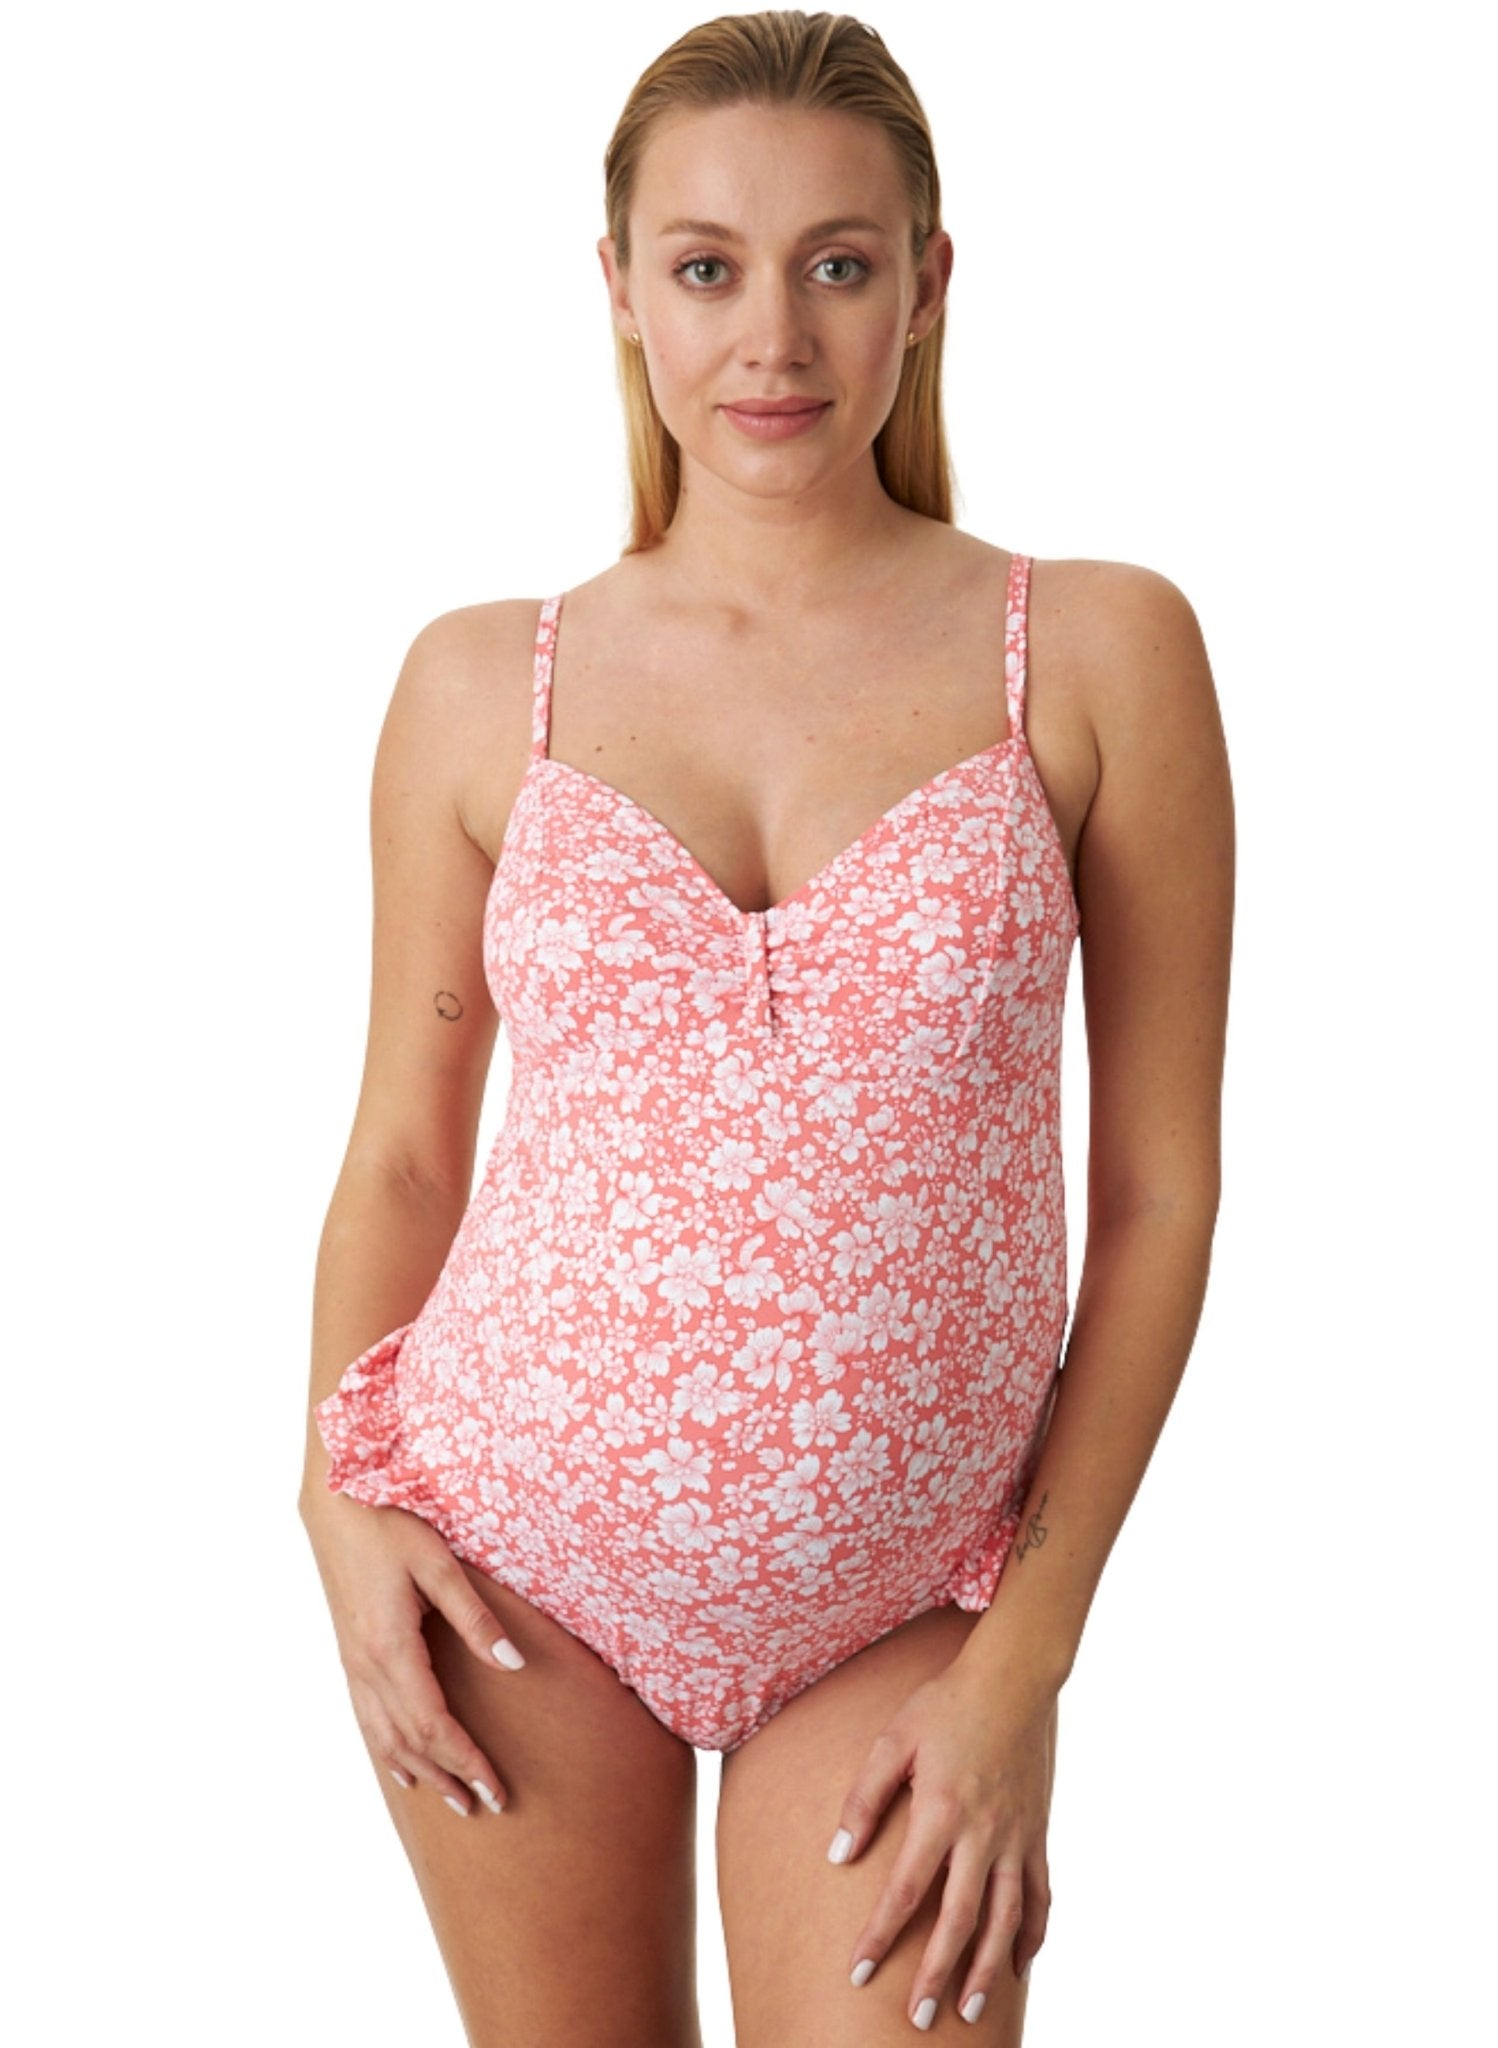 Mykonos Floral One Piece Maternity Swimsuit - Mums and Bumps